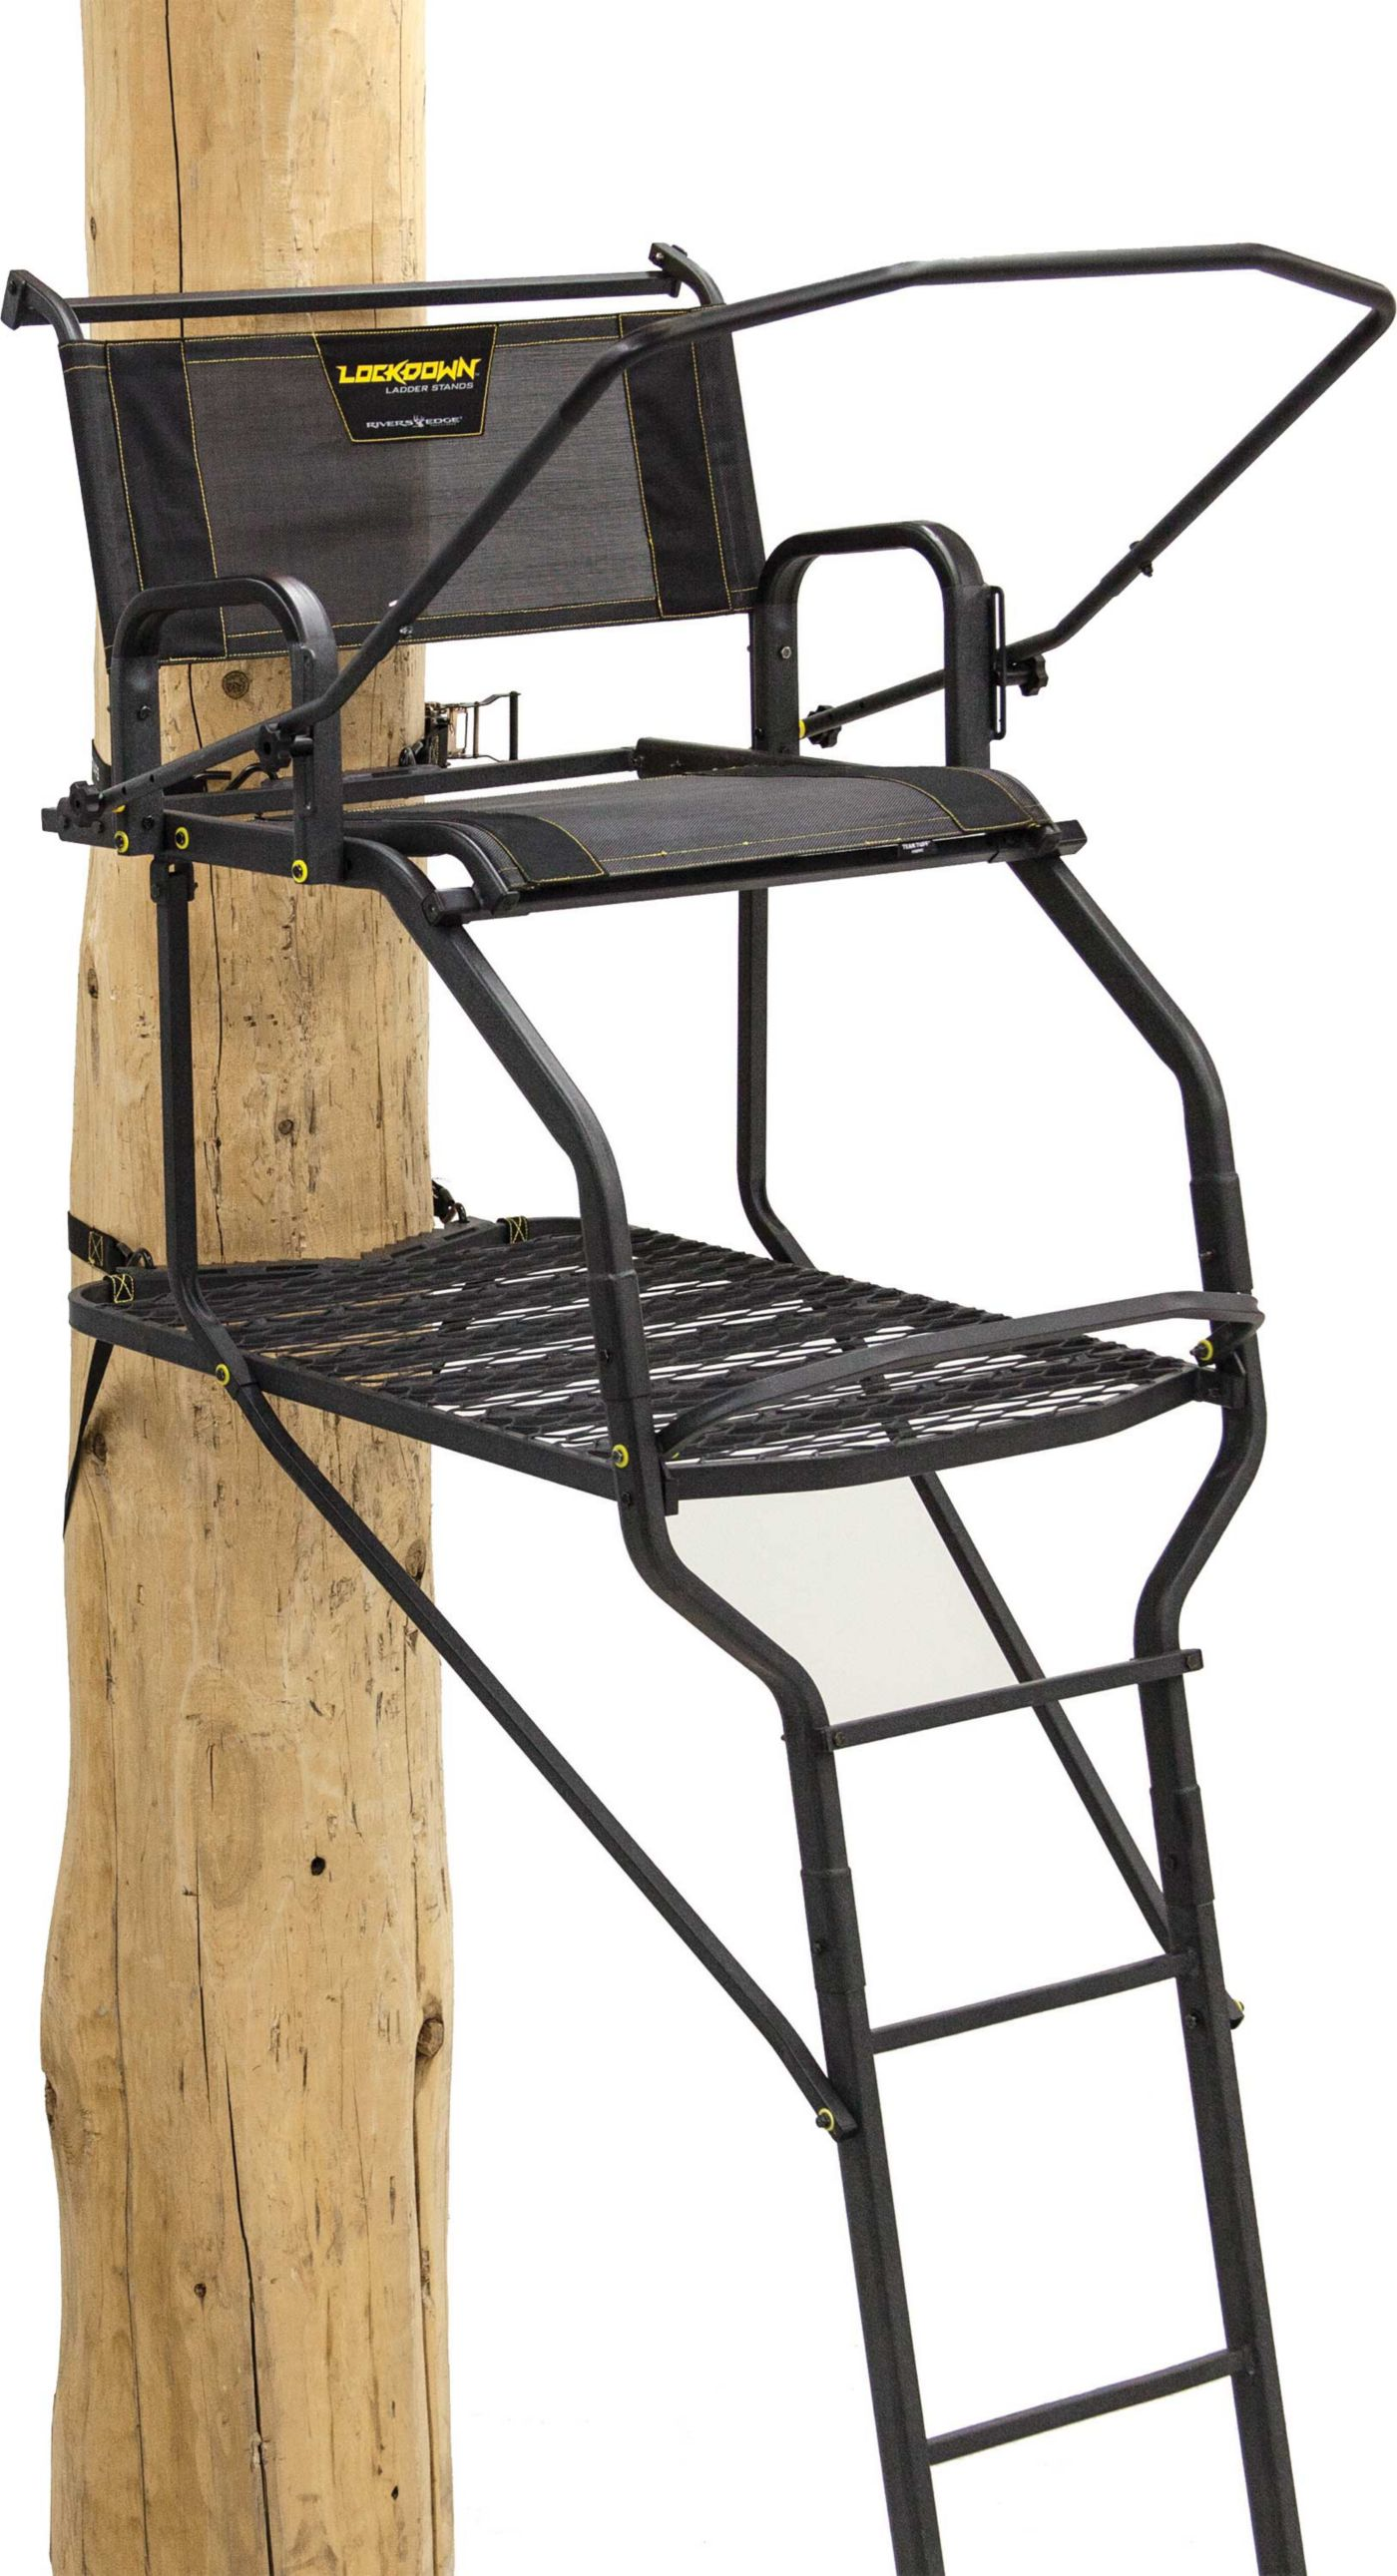 Rivers Edge Lockdown 1-Man 15' Ladder Stand